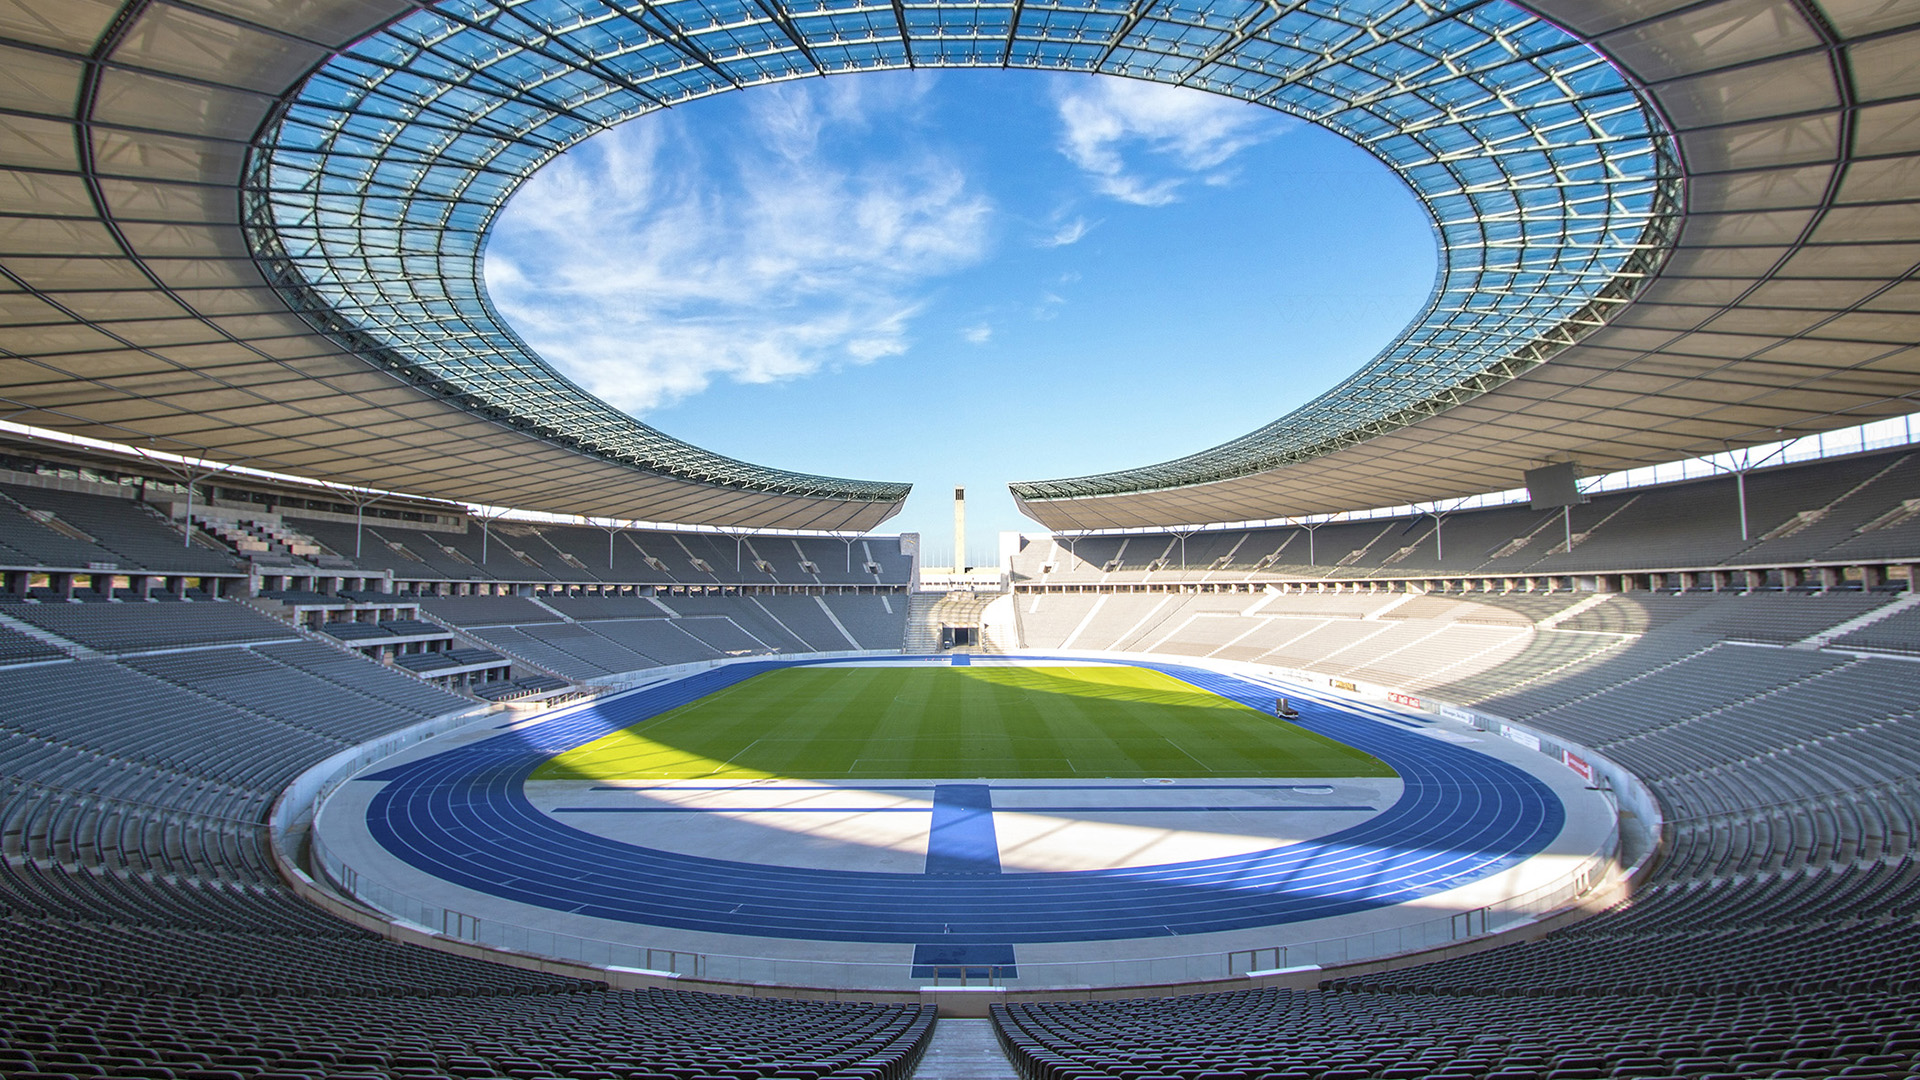 Olympiastadion Berlin. Virtual background to use on Zoom, Microsoft Teams, Skype, Google Meet, WebEx or any other compatible app.